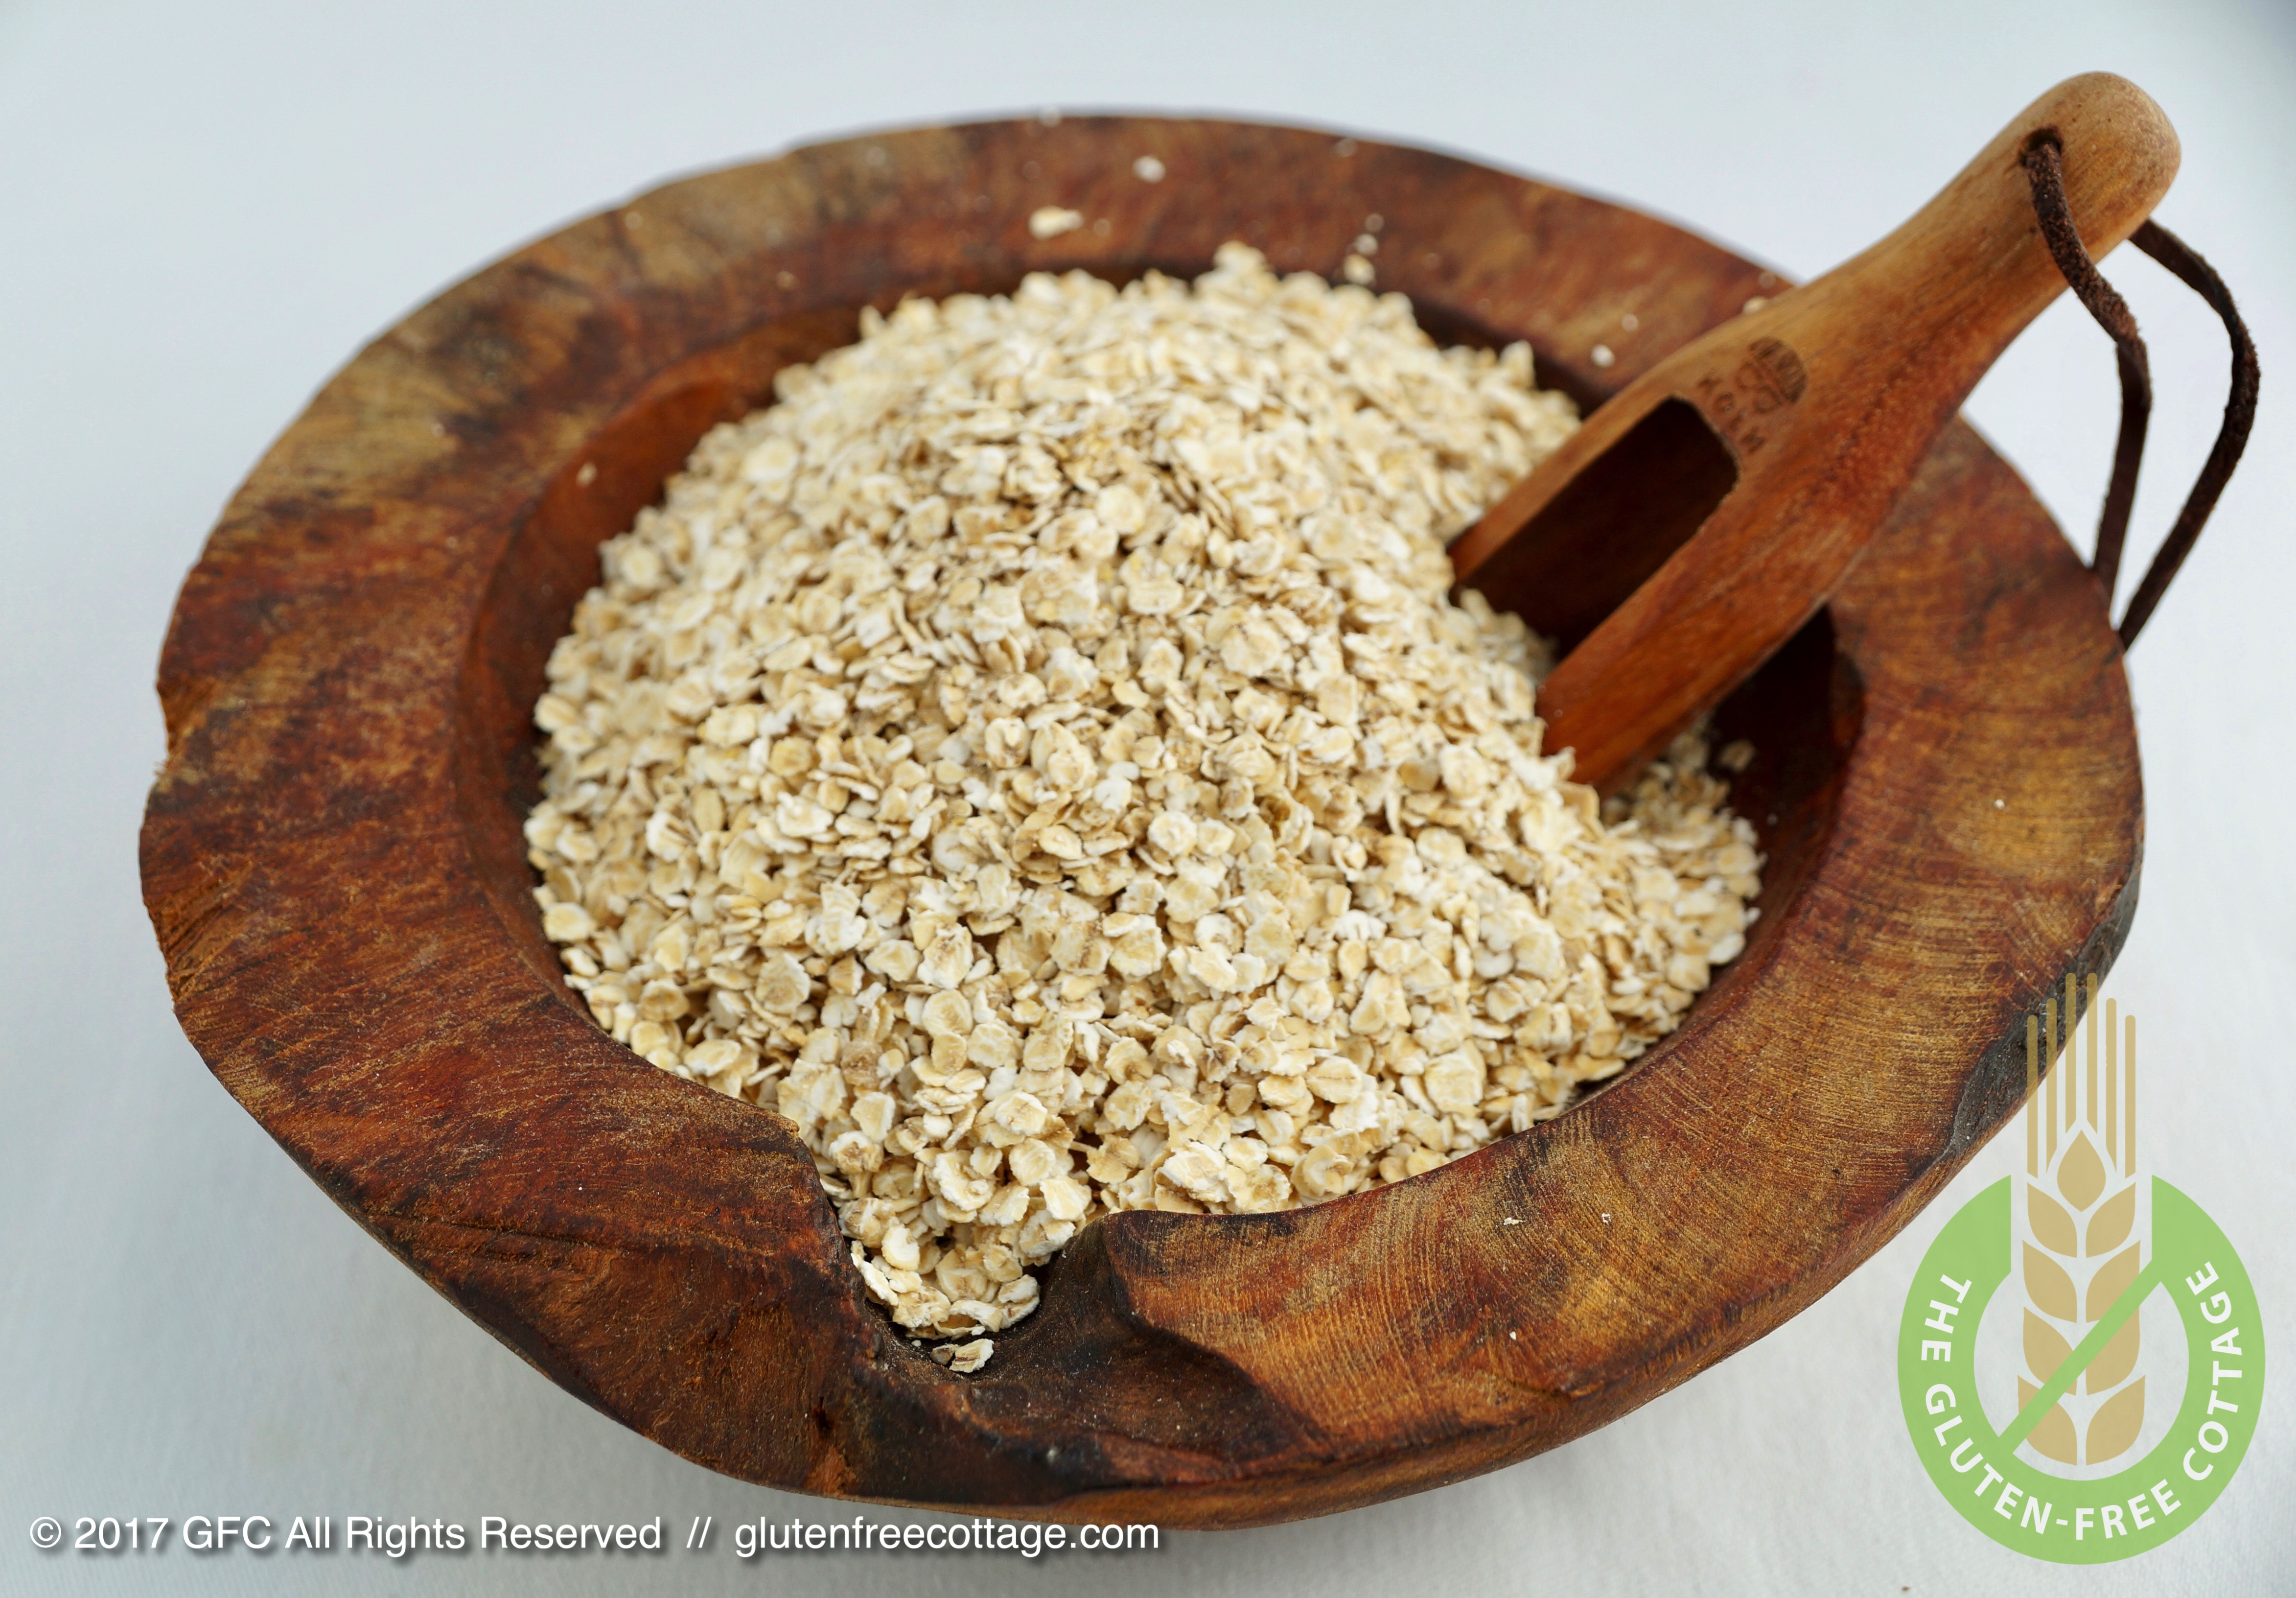 Old-fashioned rolled oats (gluten-free granola cookies).